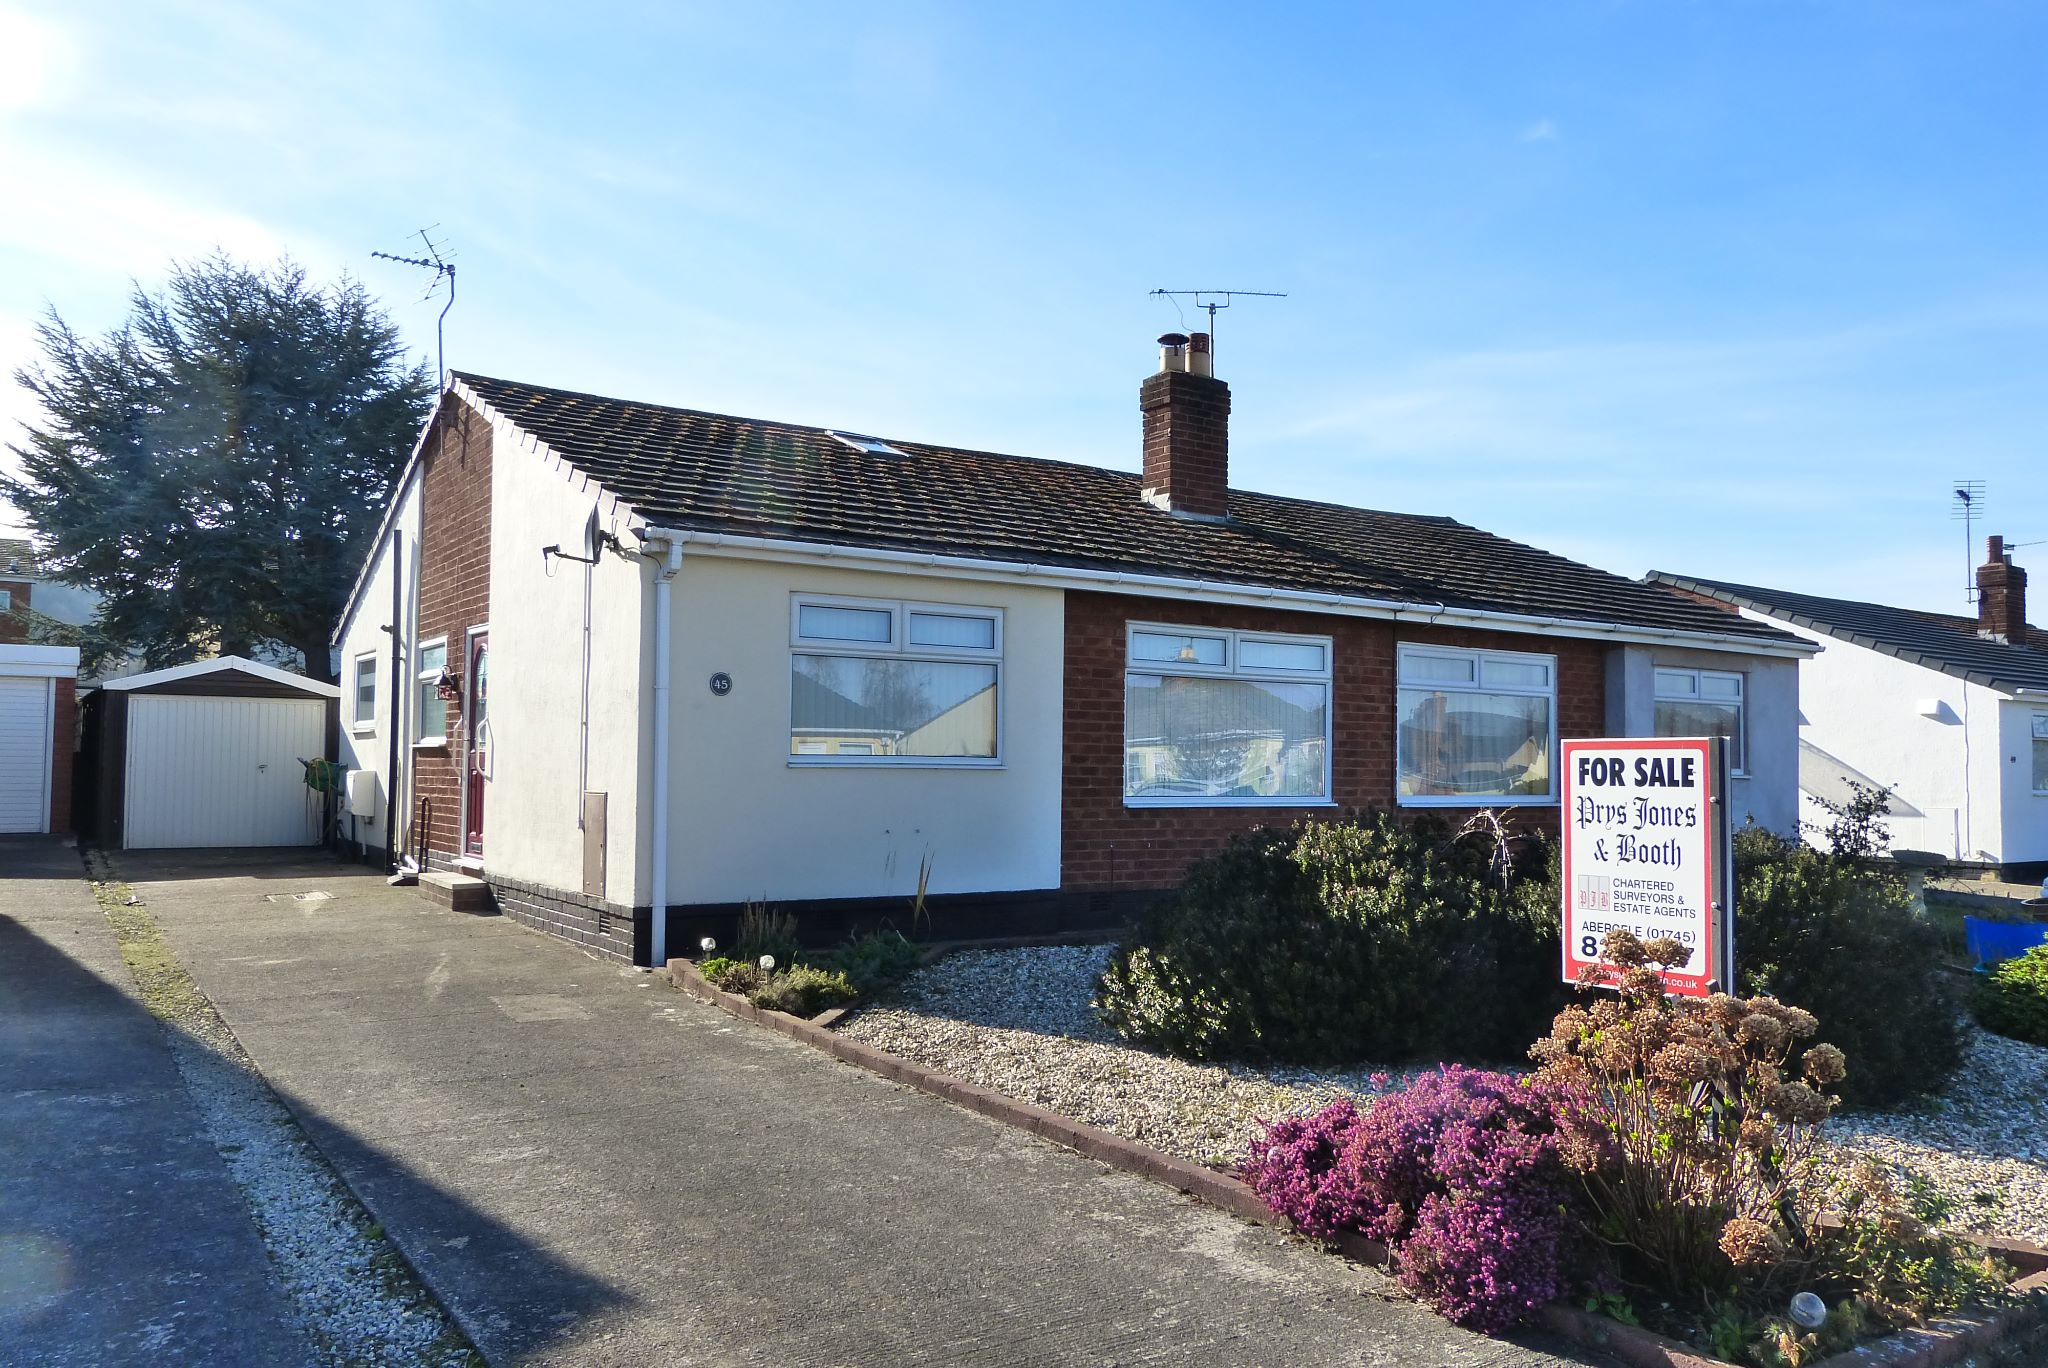 2 bedroom semi-detached bungalow SSTC in Abergele - Photograph 1